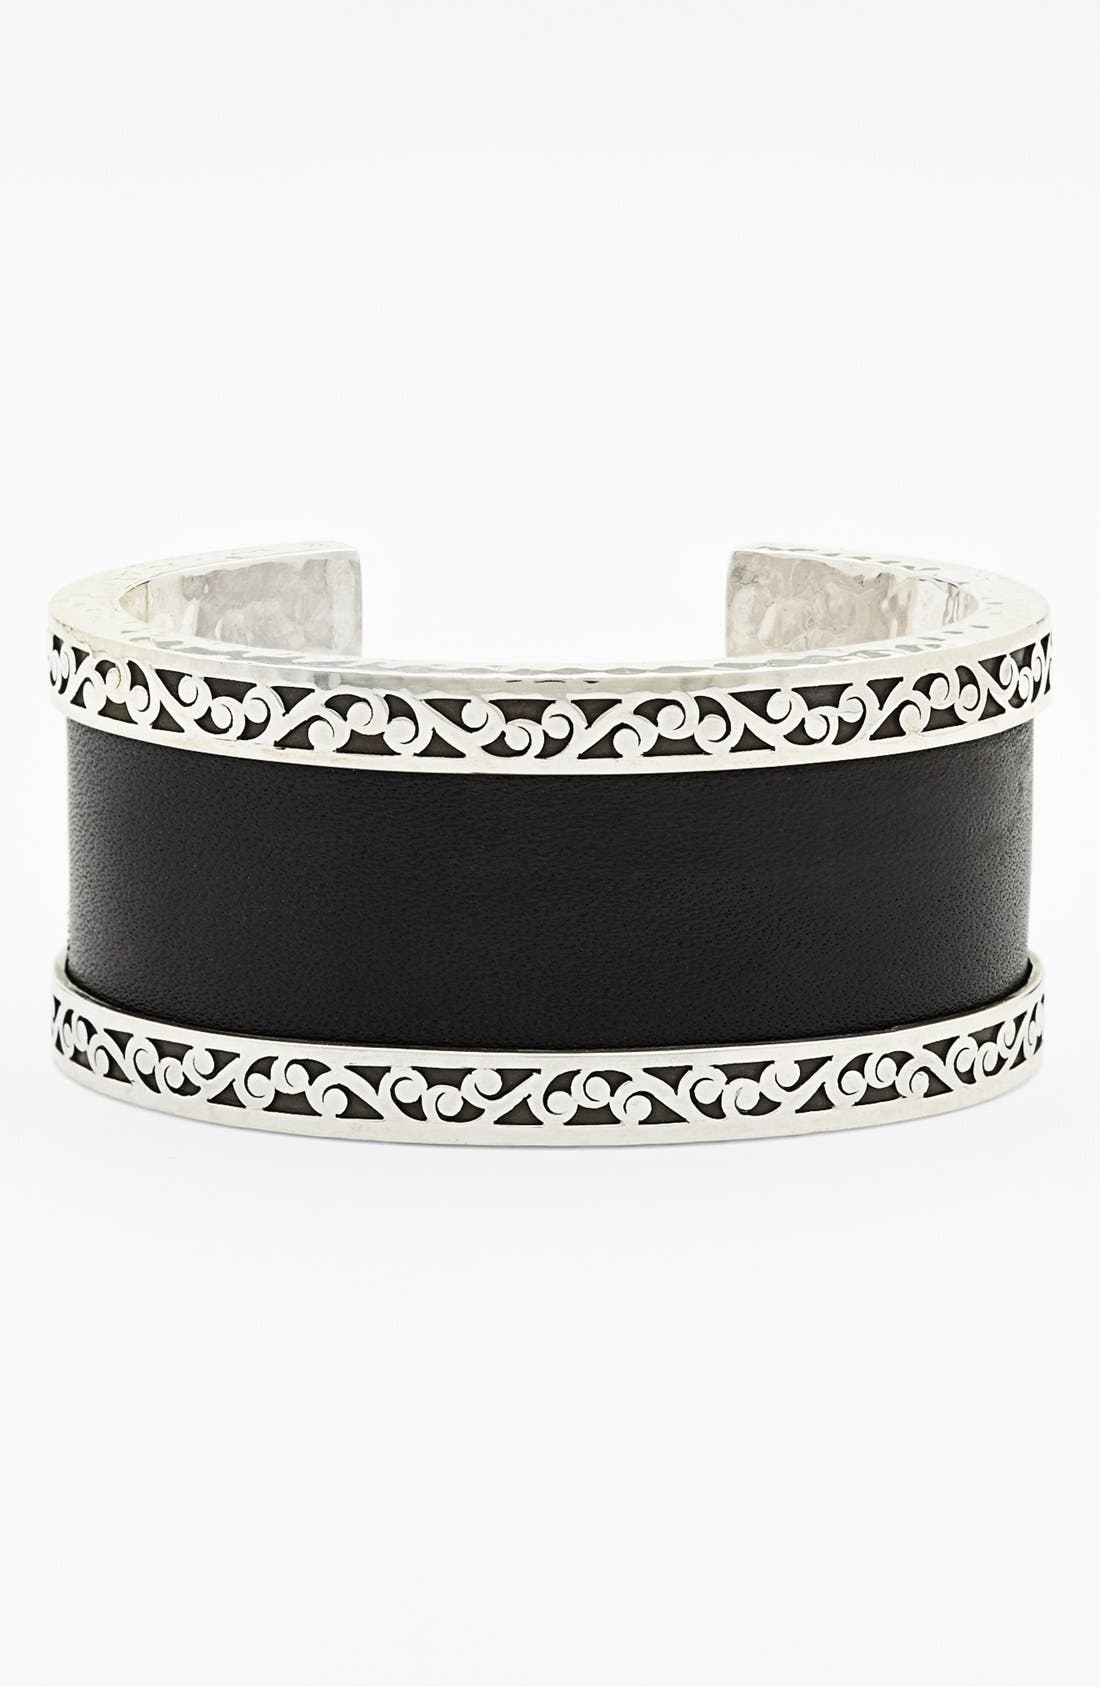 Main Image - Lois Hill Medium Leather & Sterling Silver Cuff